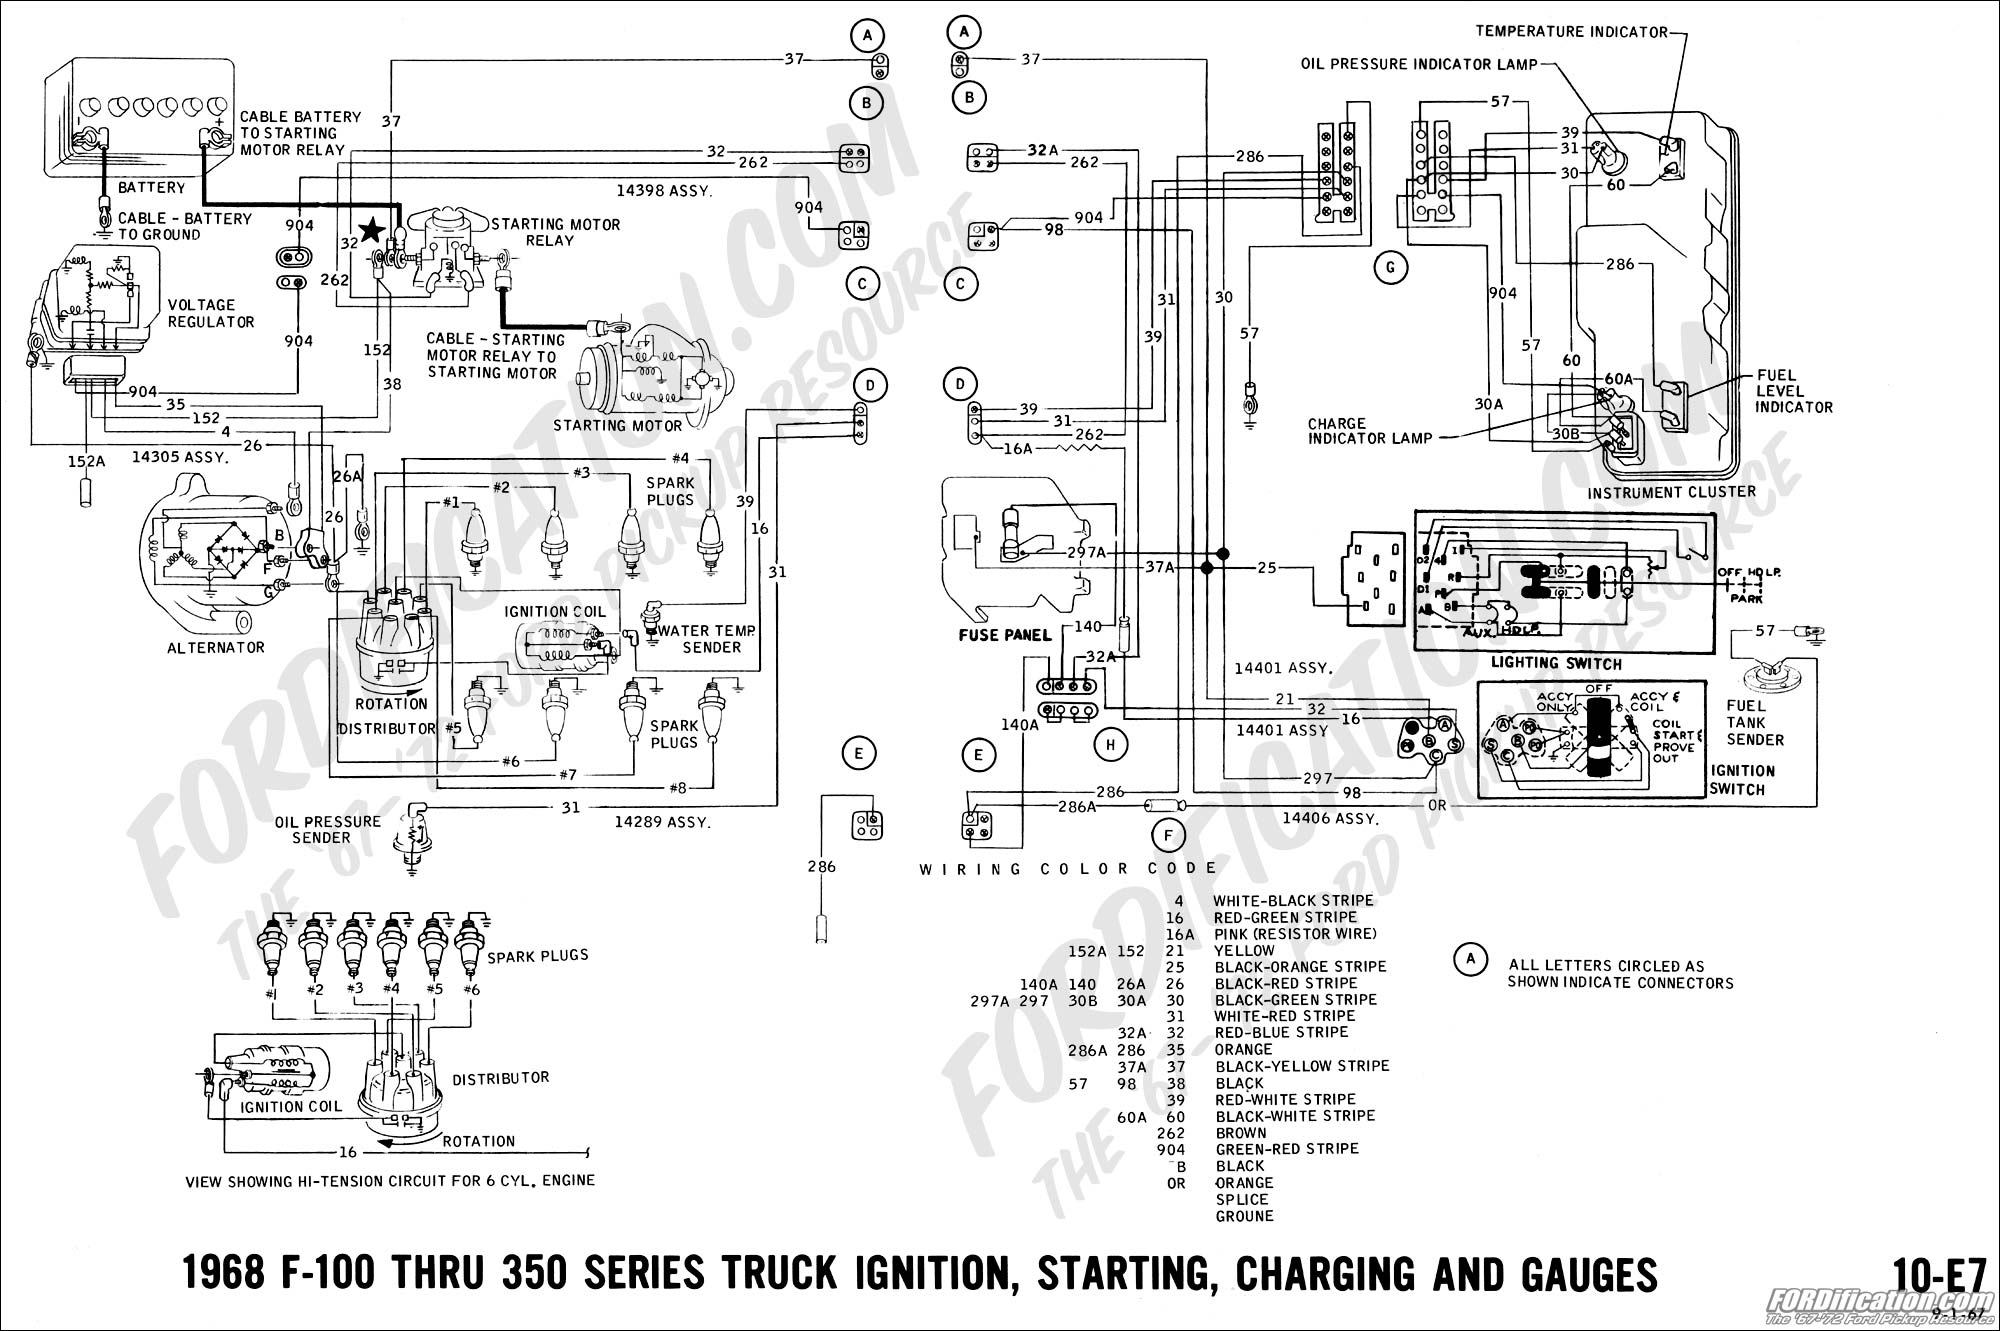 1976 Ford Truck Starting Circuit Wiring Diagrams Reveolution Of Ignition Diagram Images Gallery